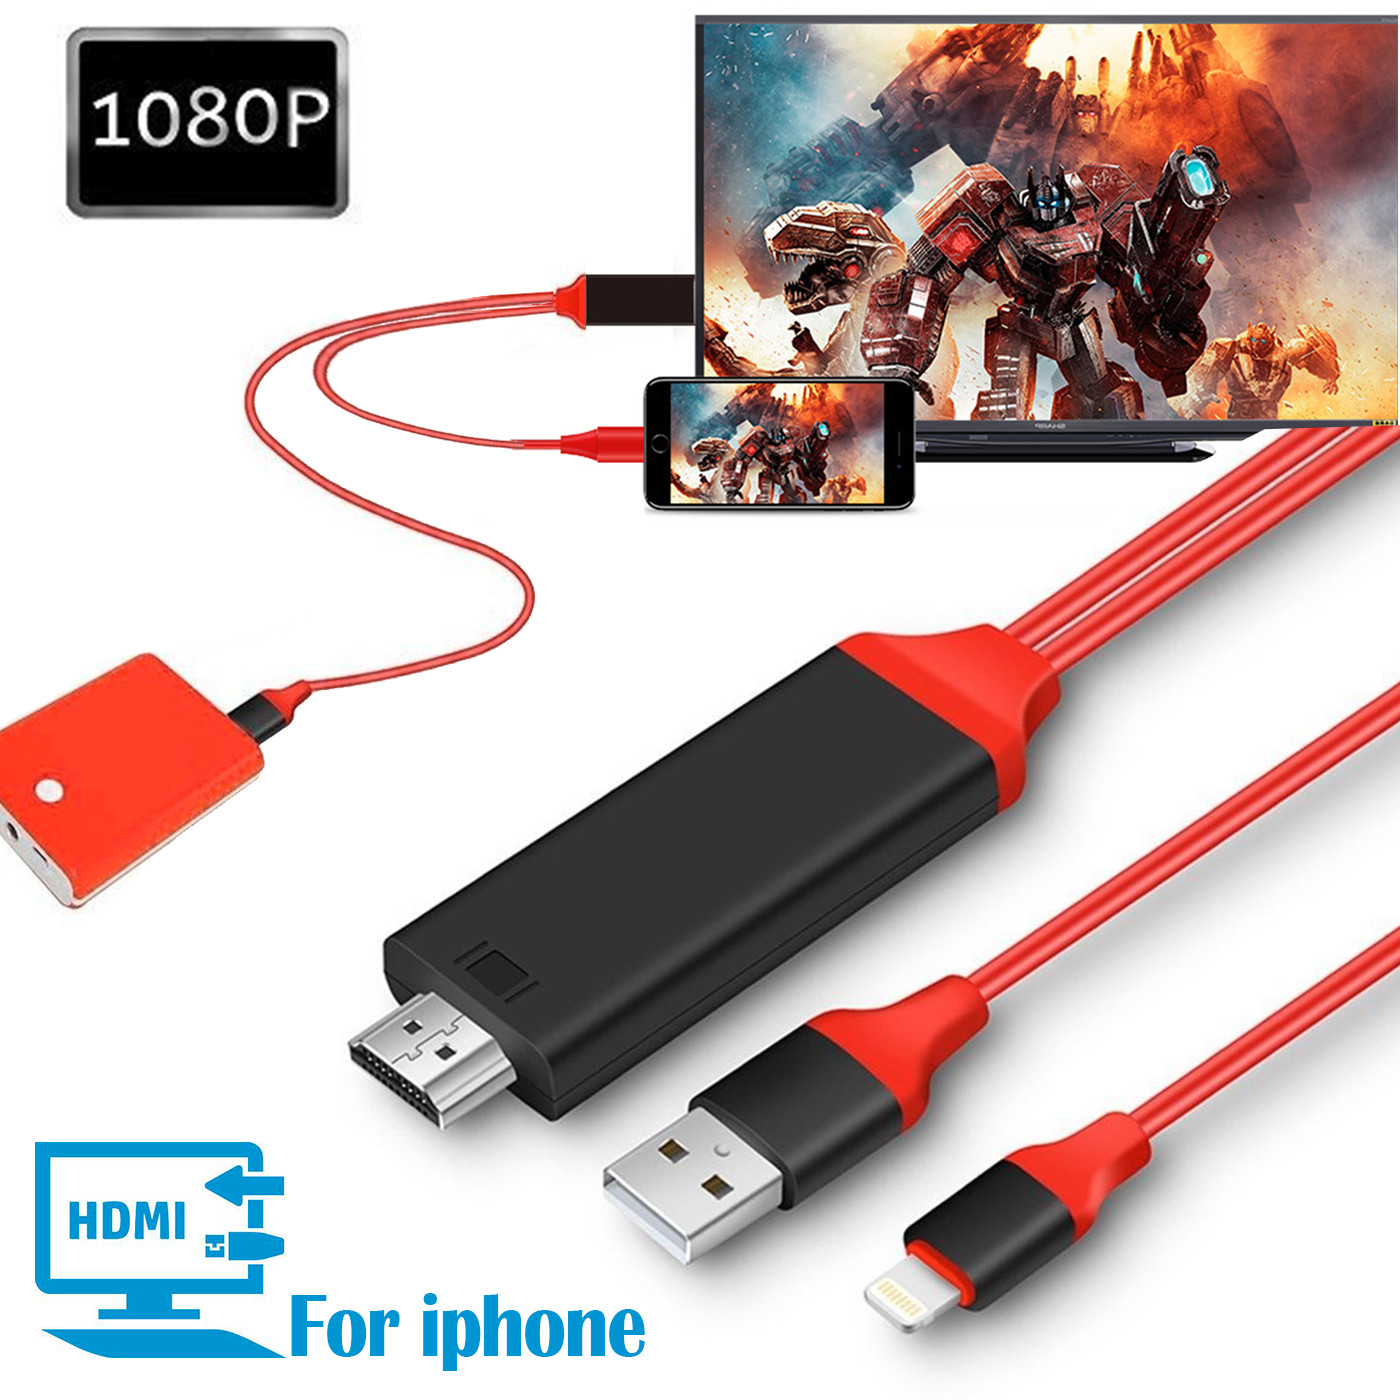 iPad Lightning to HDMI Adapter Cable, 6.6FT 1080P iphone lightning to HDMI Video AV Cable Connector Conversion HDTV Adapter for iPhone/iPad/iPod